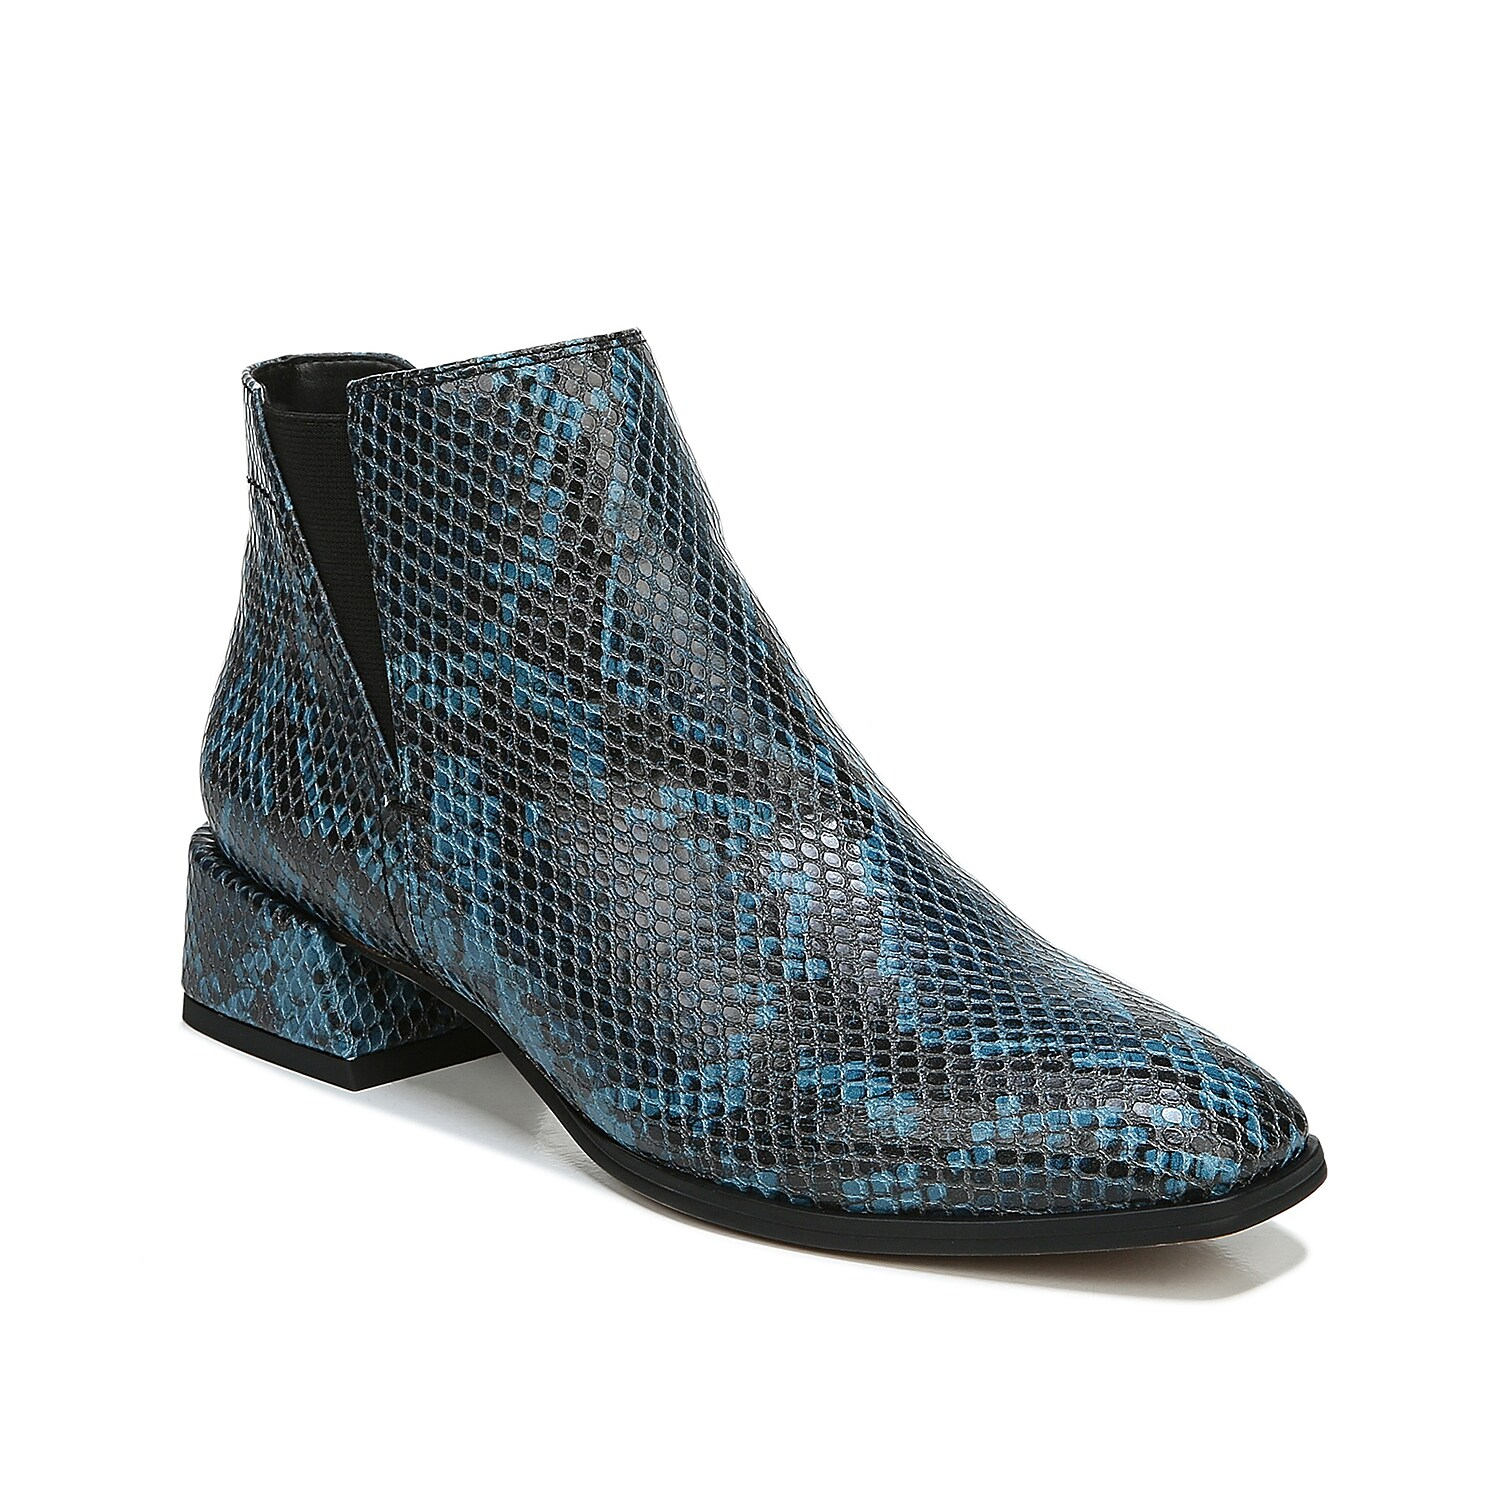 The Franco Sarto Nico bootie brings that edge of sophistication to your dressy looks. Comprising slightly textured leather upper, this bootie has coordinating stitching accents, outside elastic gore and a polished block heel.Click here for Boot Measuring Guide.